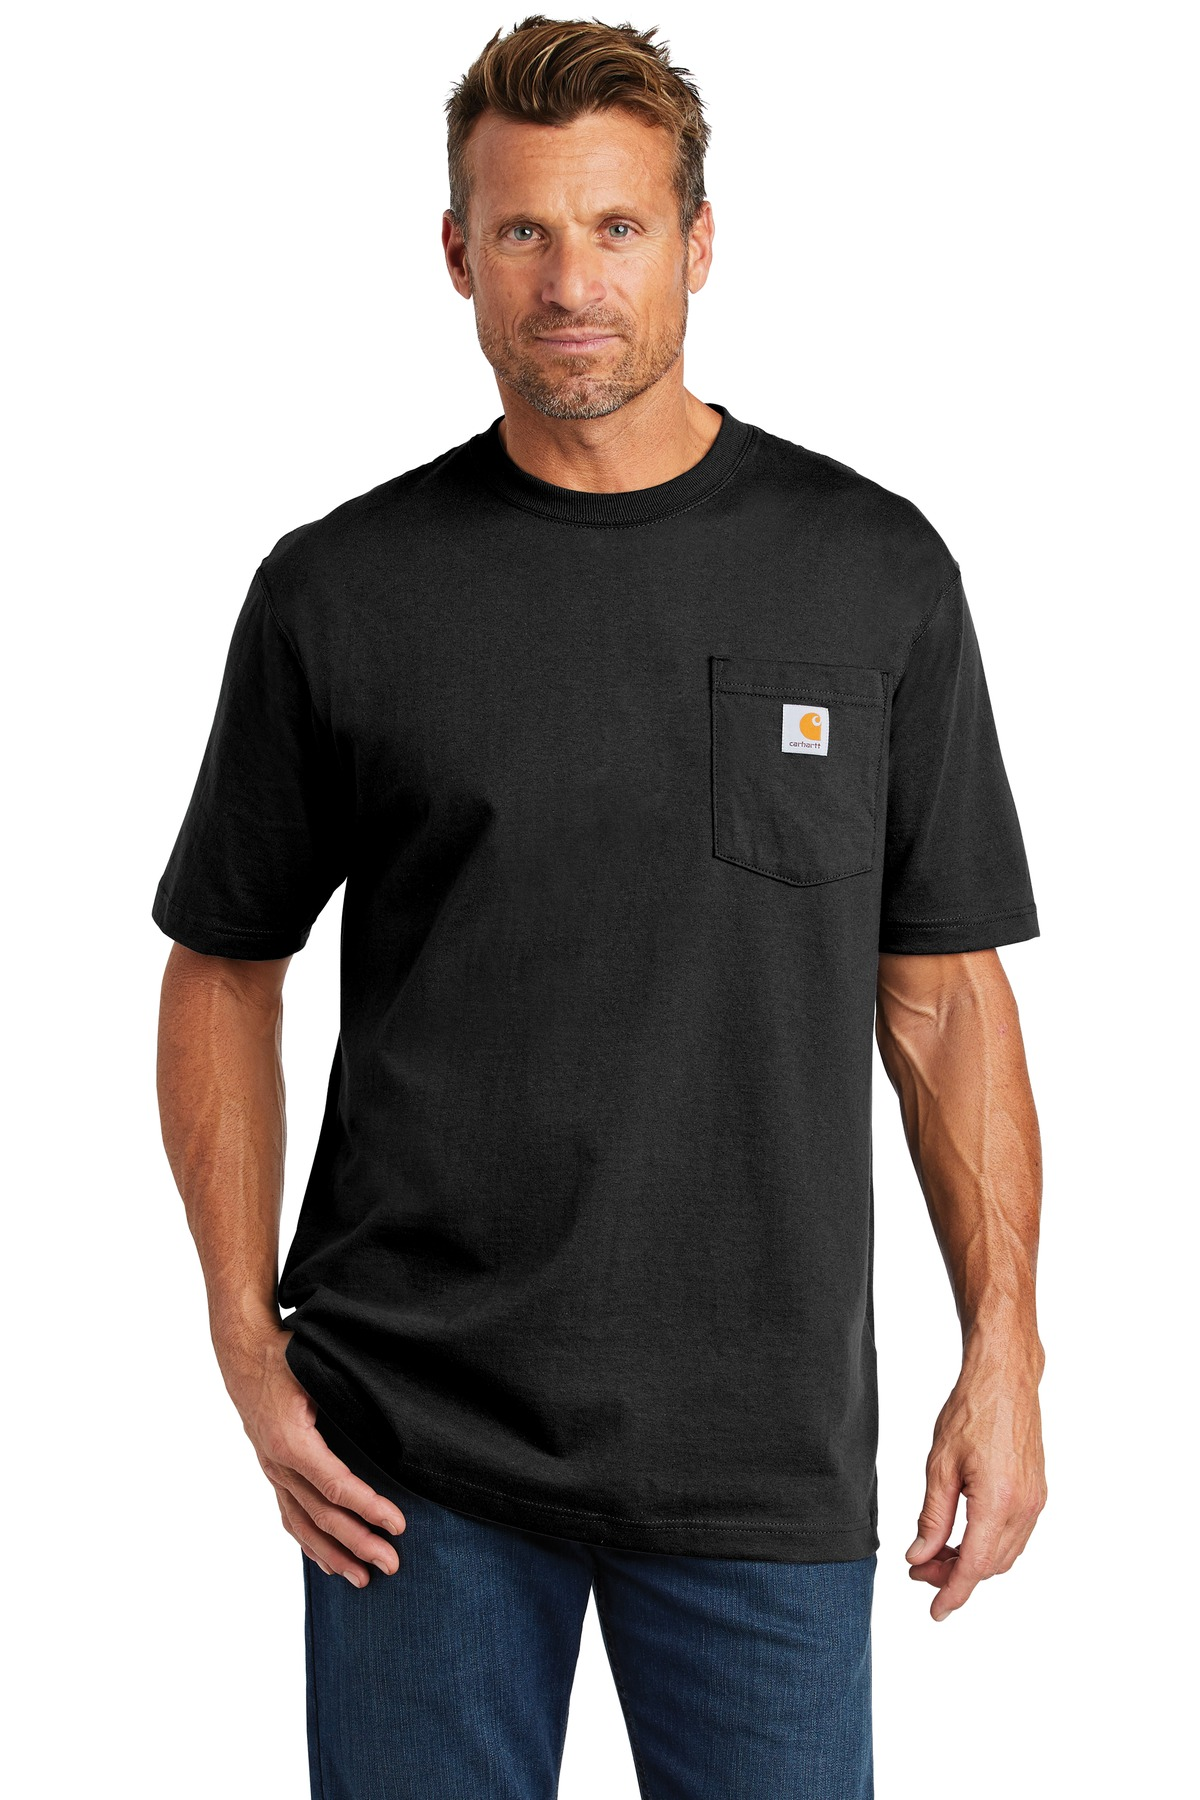 Carhartt  ®  Tall Workwear Pocket Short Sleeve T-Shirt. CTTK87 - Black